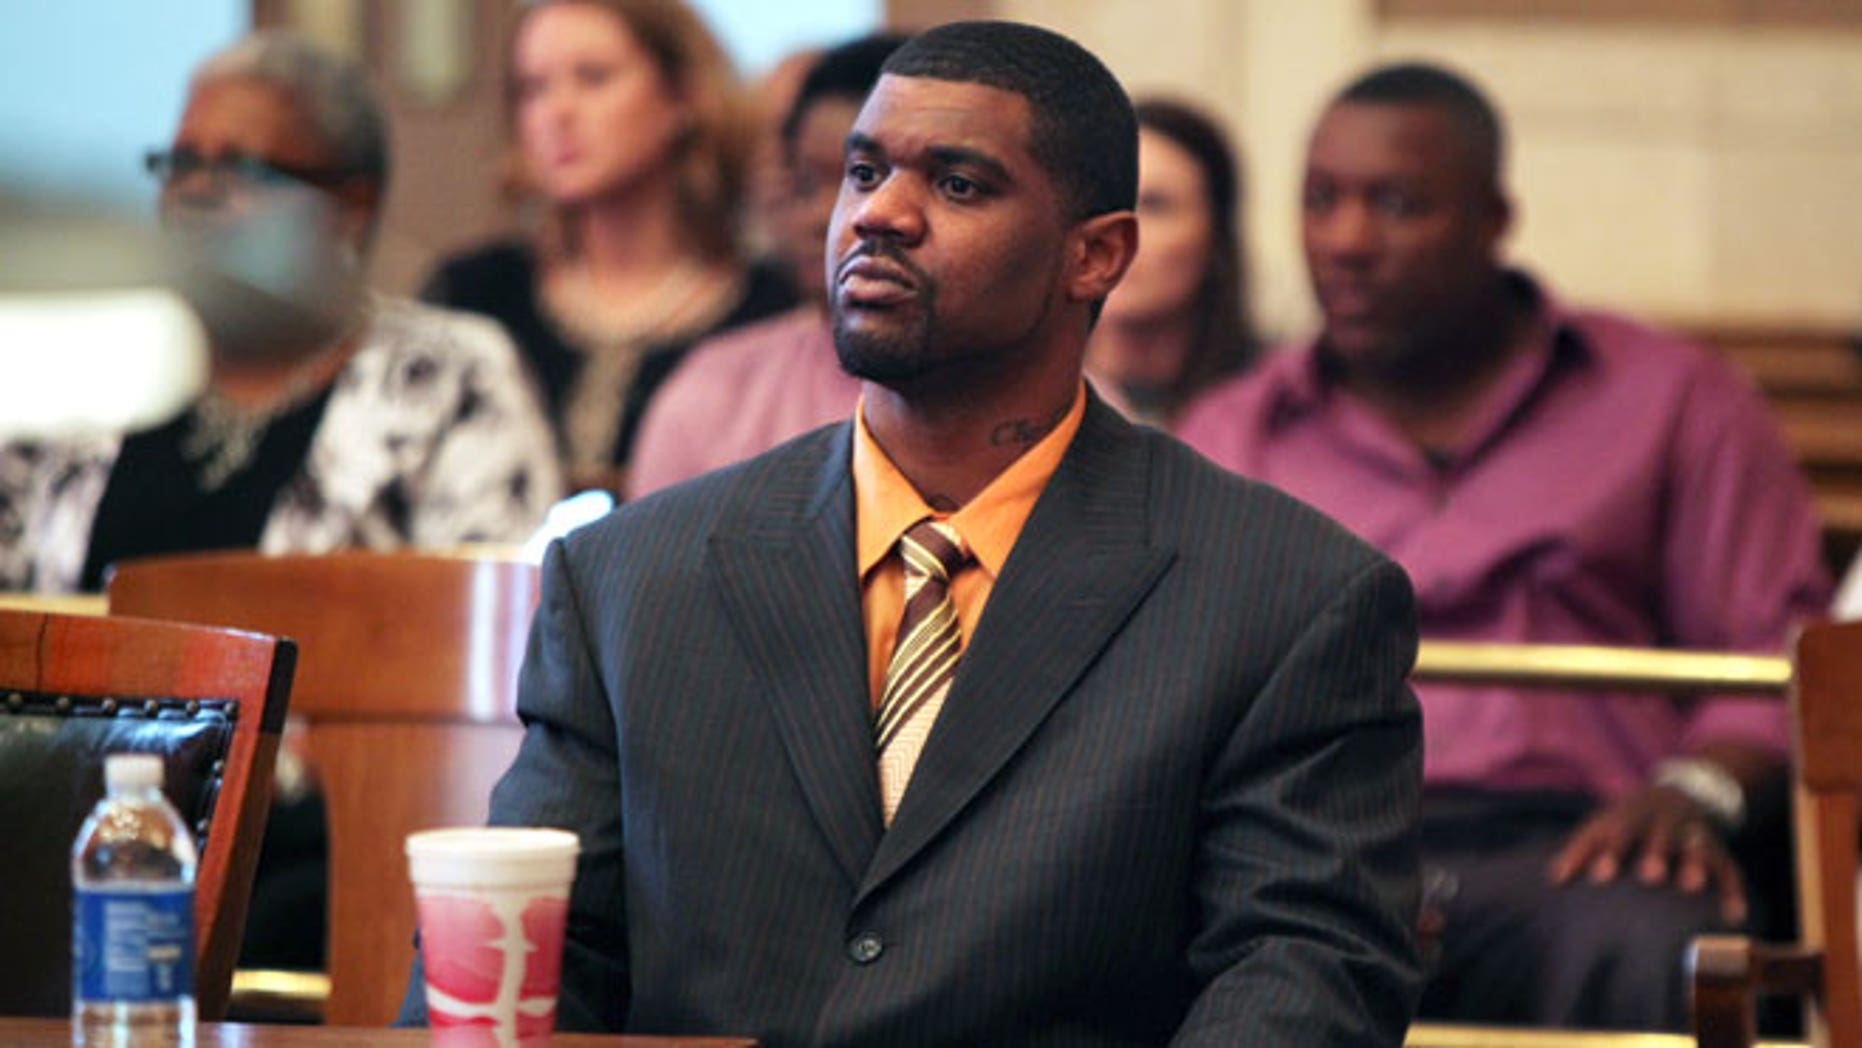 In this April 24, 2012, photo, former Cincinnati Bengals NFL football linebacker Nate Webster, appears in court for closing arguments in his trial in Cincinnati.